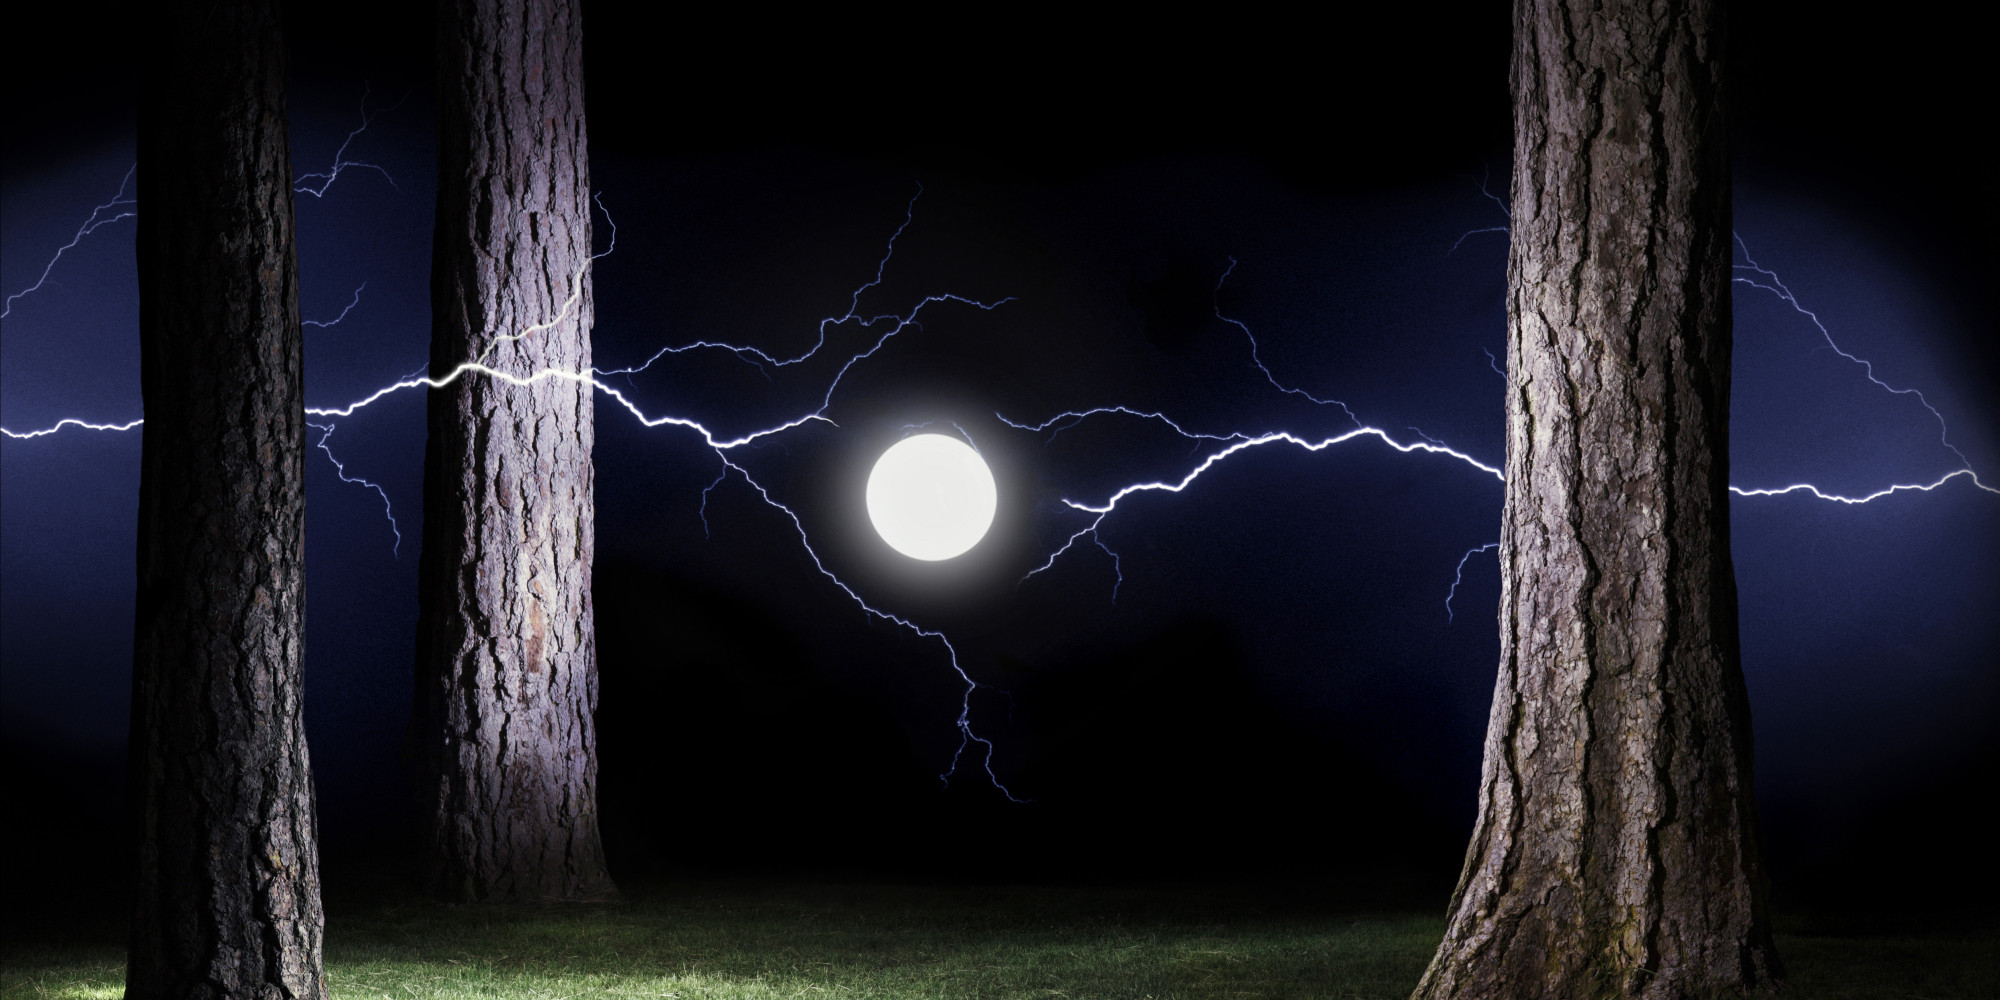 Ball Lightning Wallpapers High Quality | Download Free